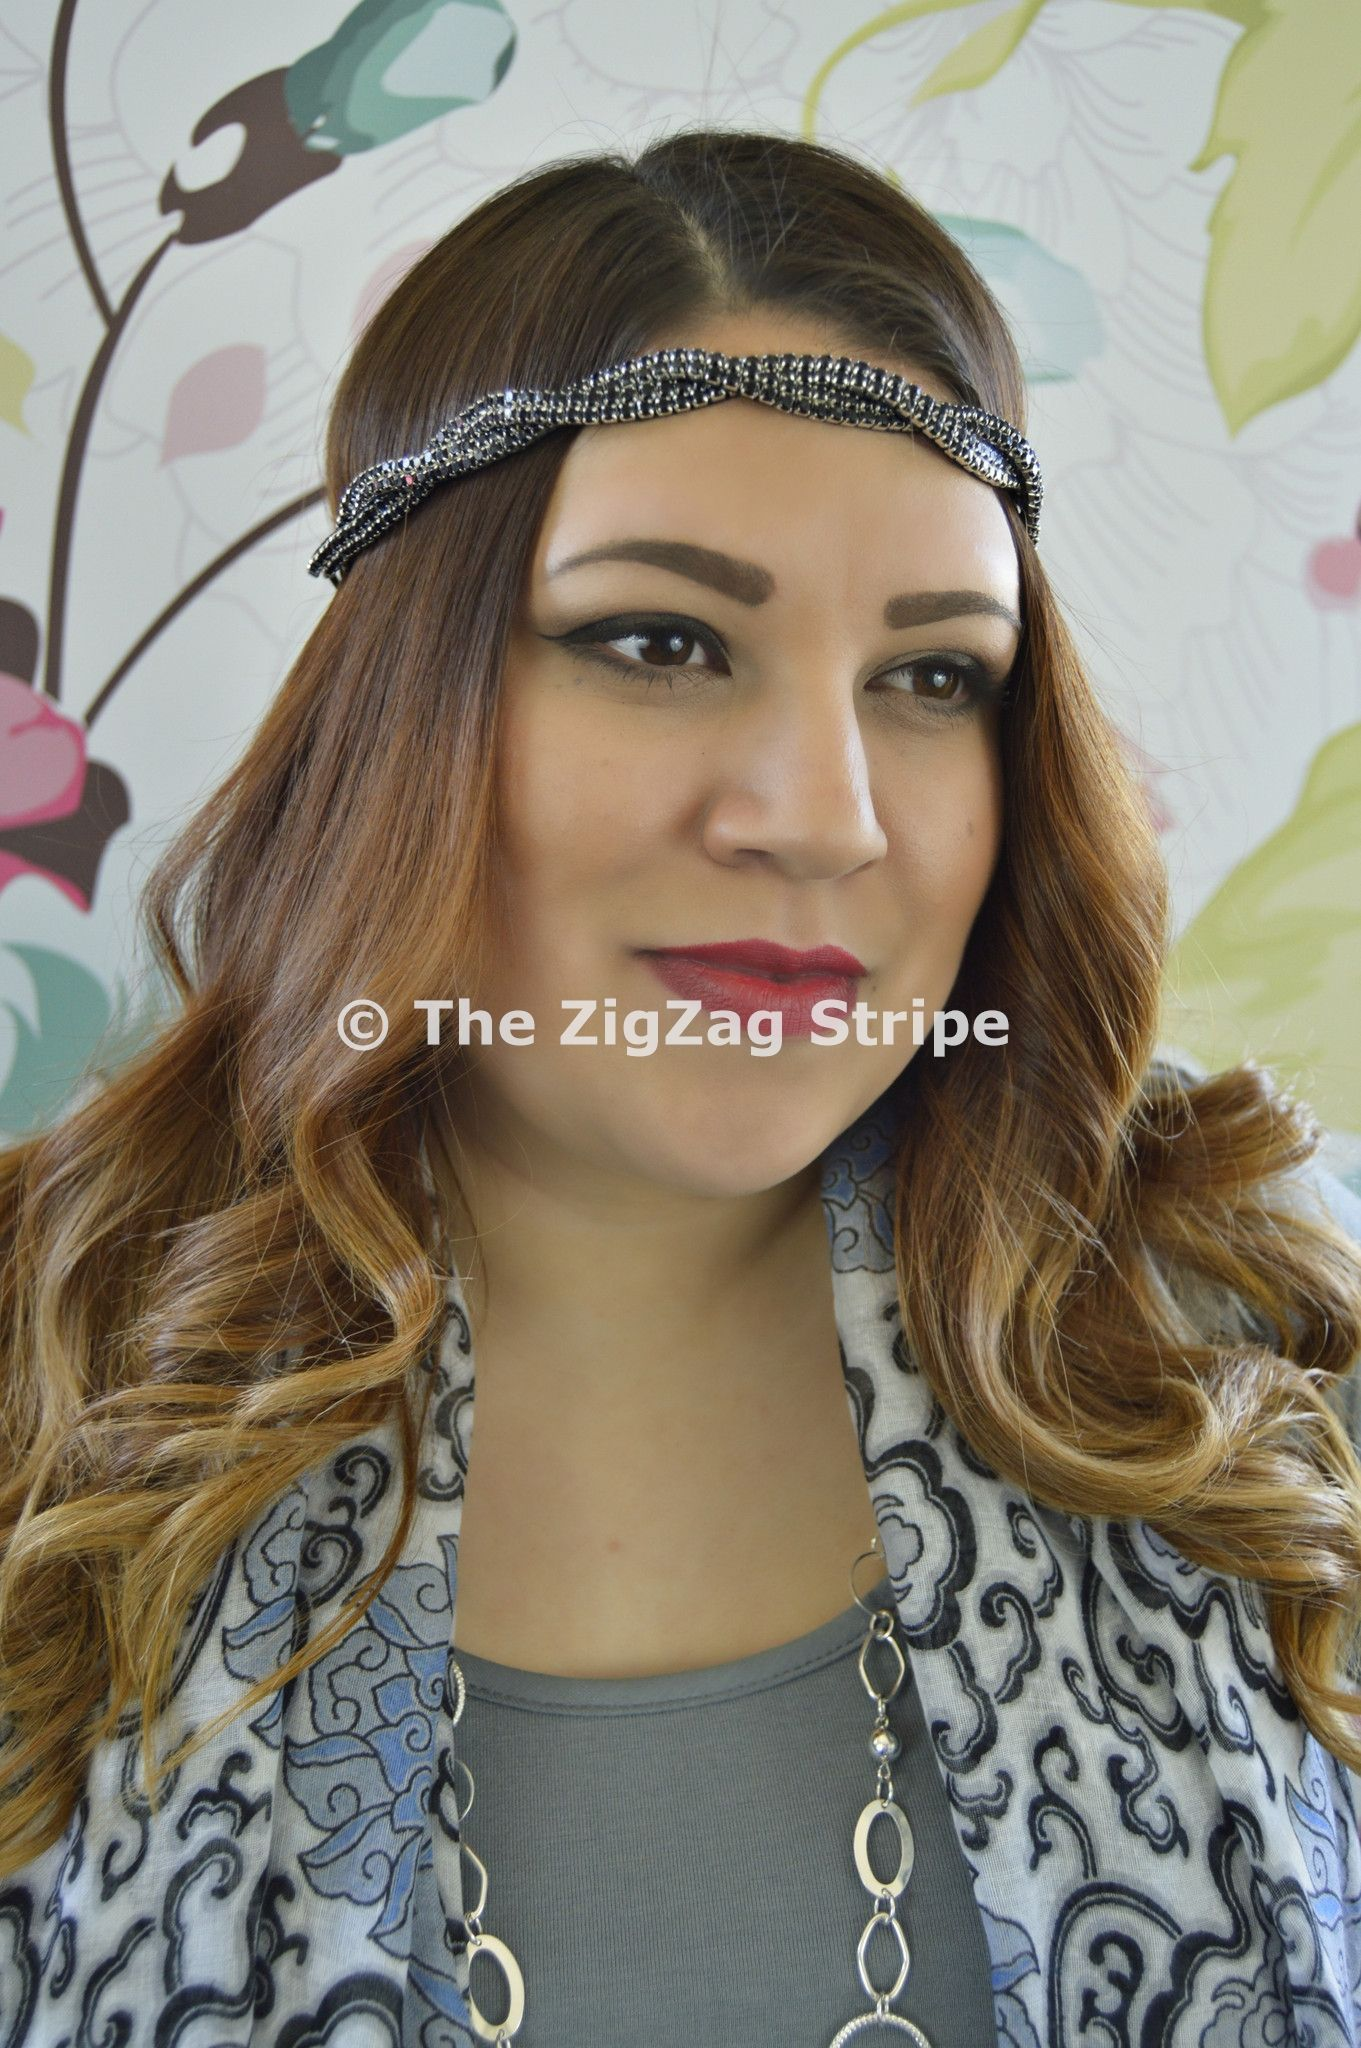 Harlow Headband The ZigZag Stripe. Use coupon code ZZS72